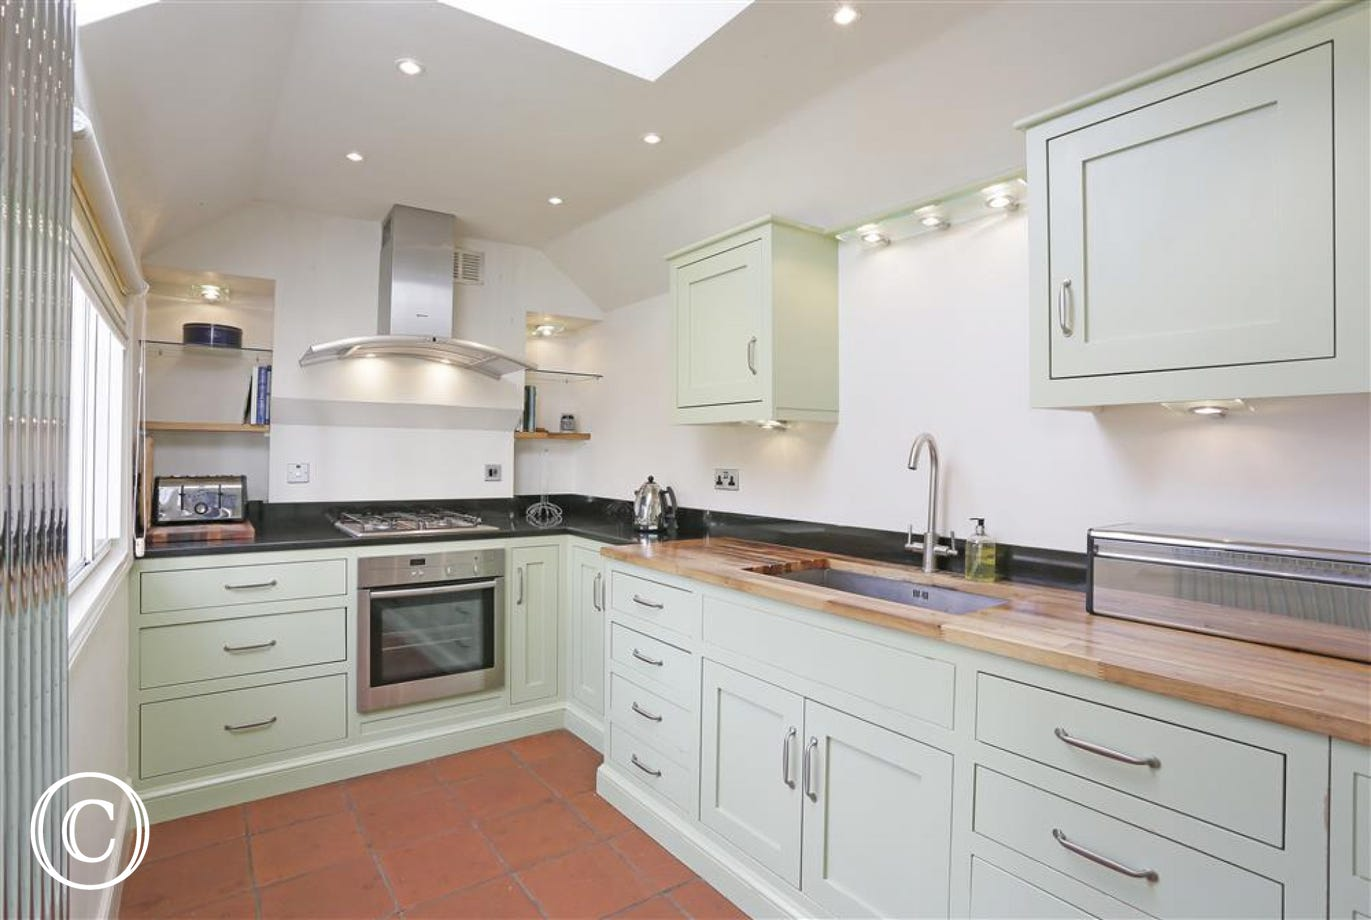 This apple green kitchen is sure to have everything you need for your self-catering stay.